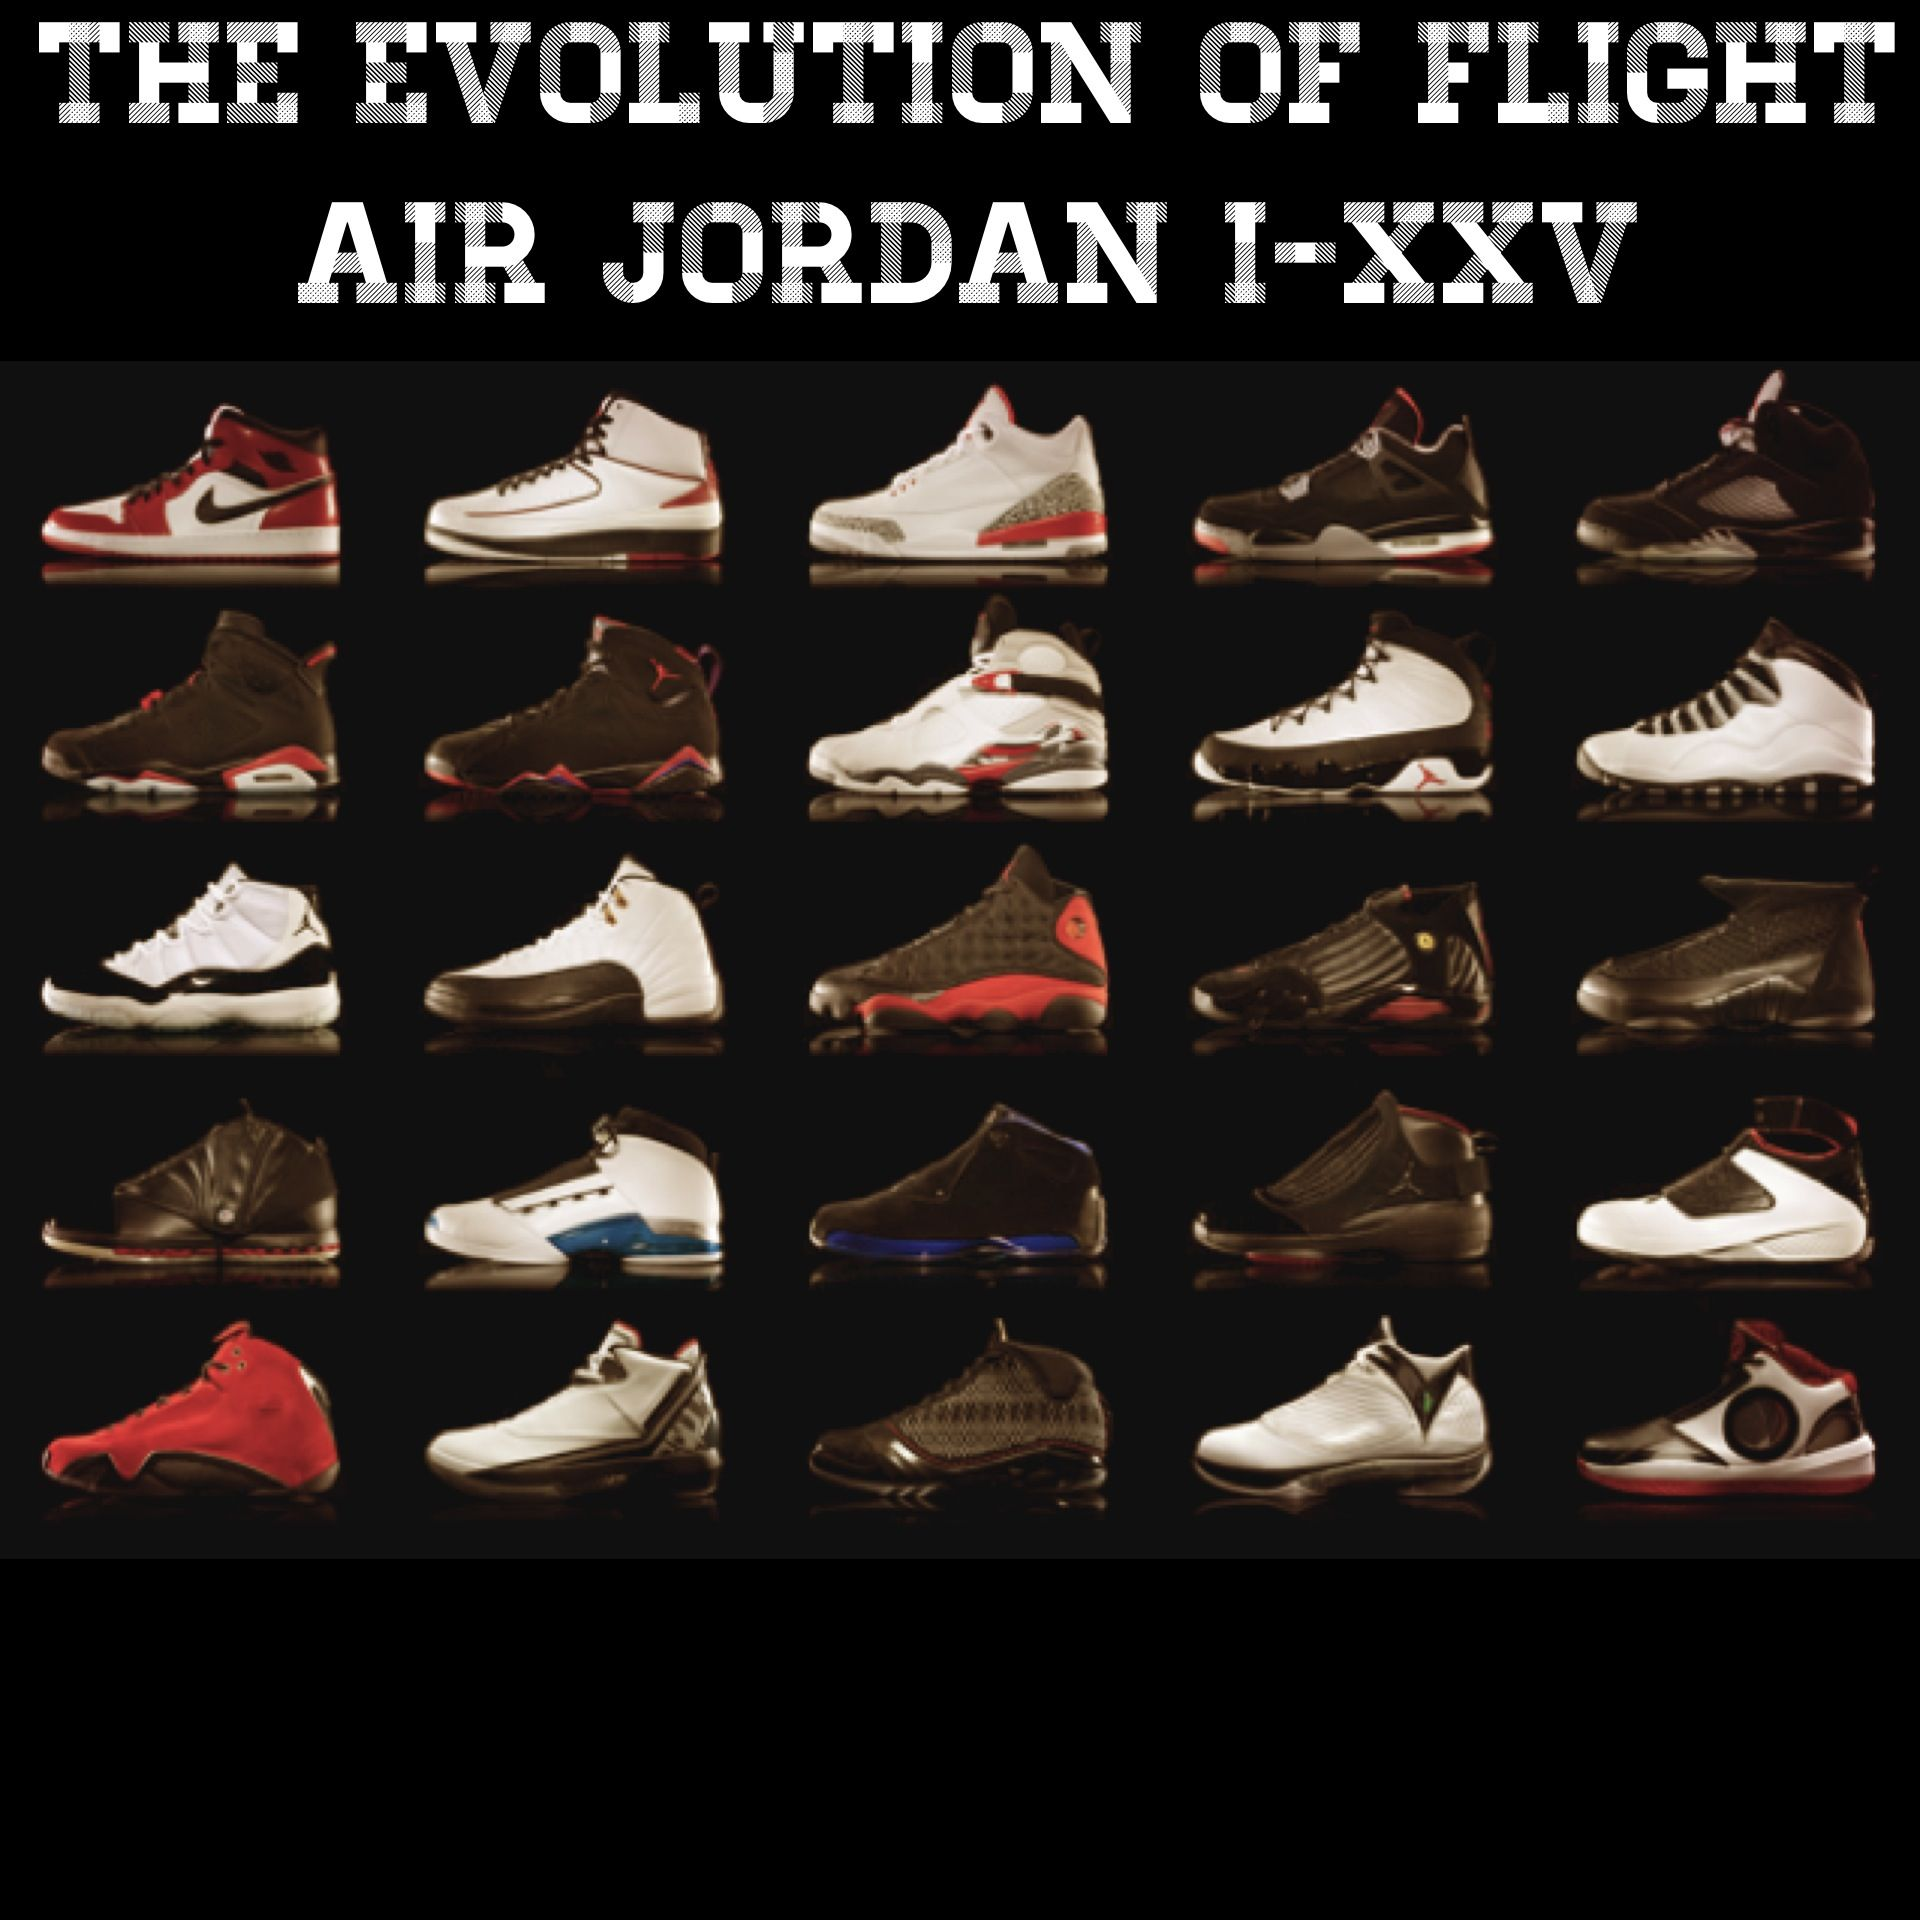 All Jordan Shoes